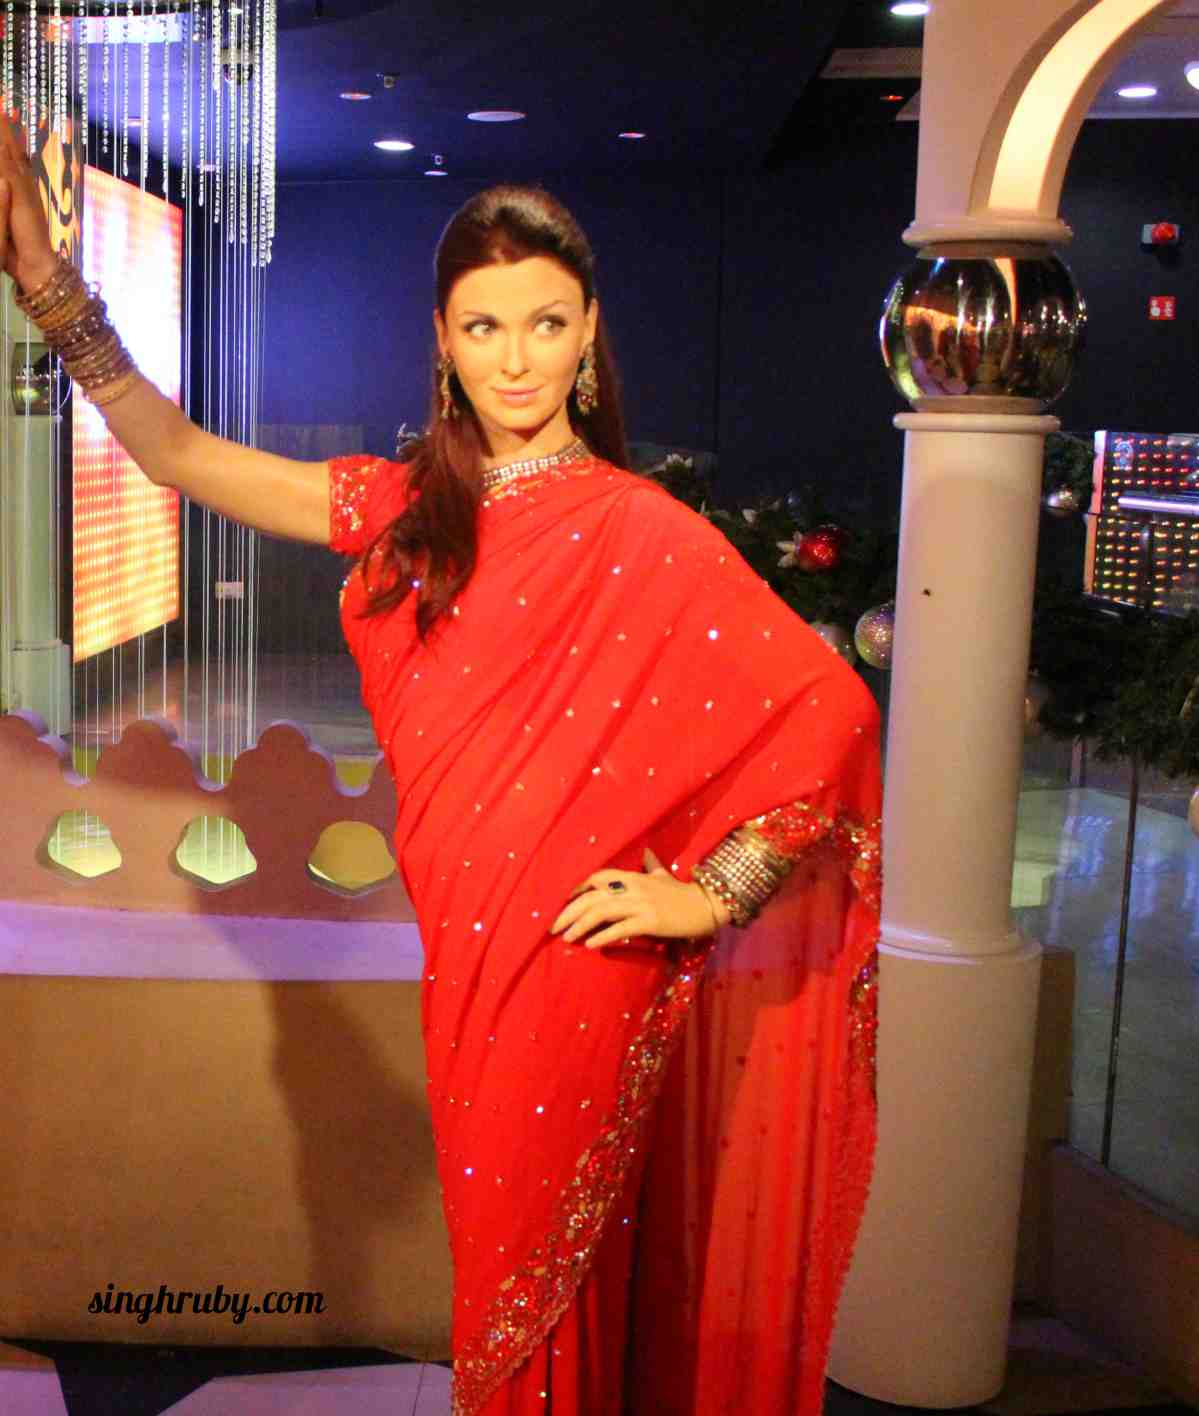 Aishwarya Rai Bachhan at Madam Tussauds London